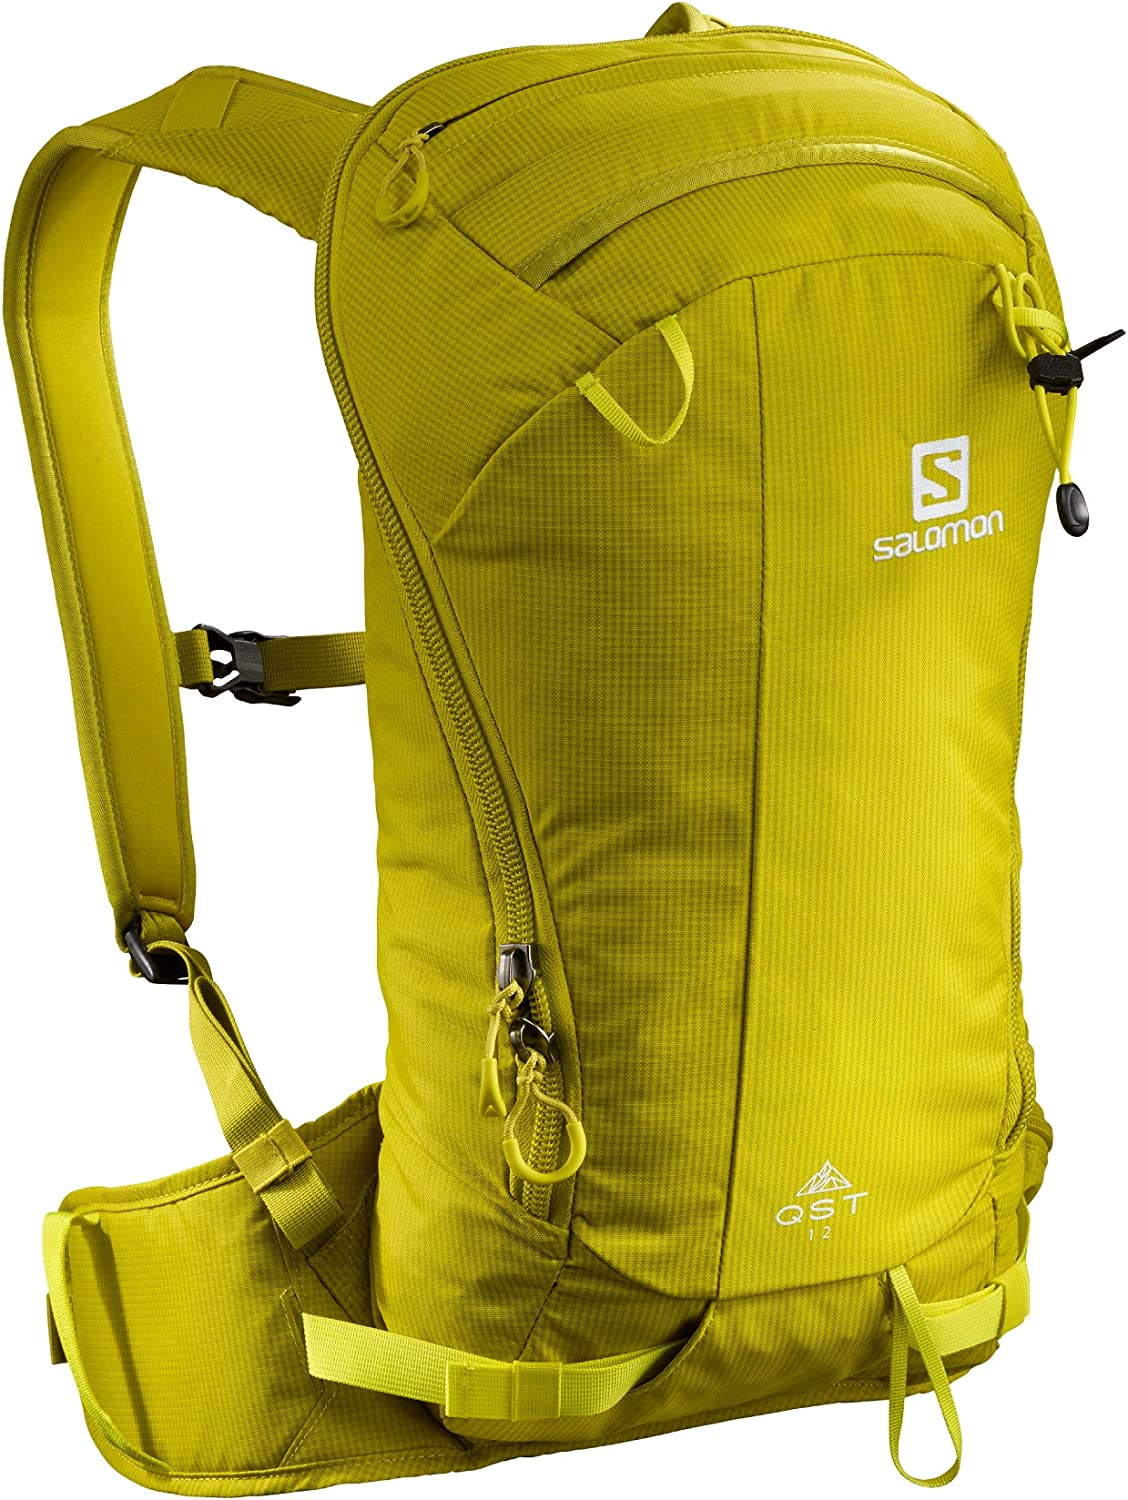 Ranking TOP17 Salomon Unisex-Adult Qst 12 Complete Free Shipping